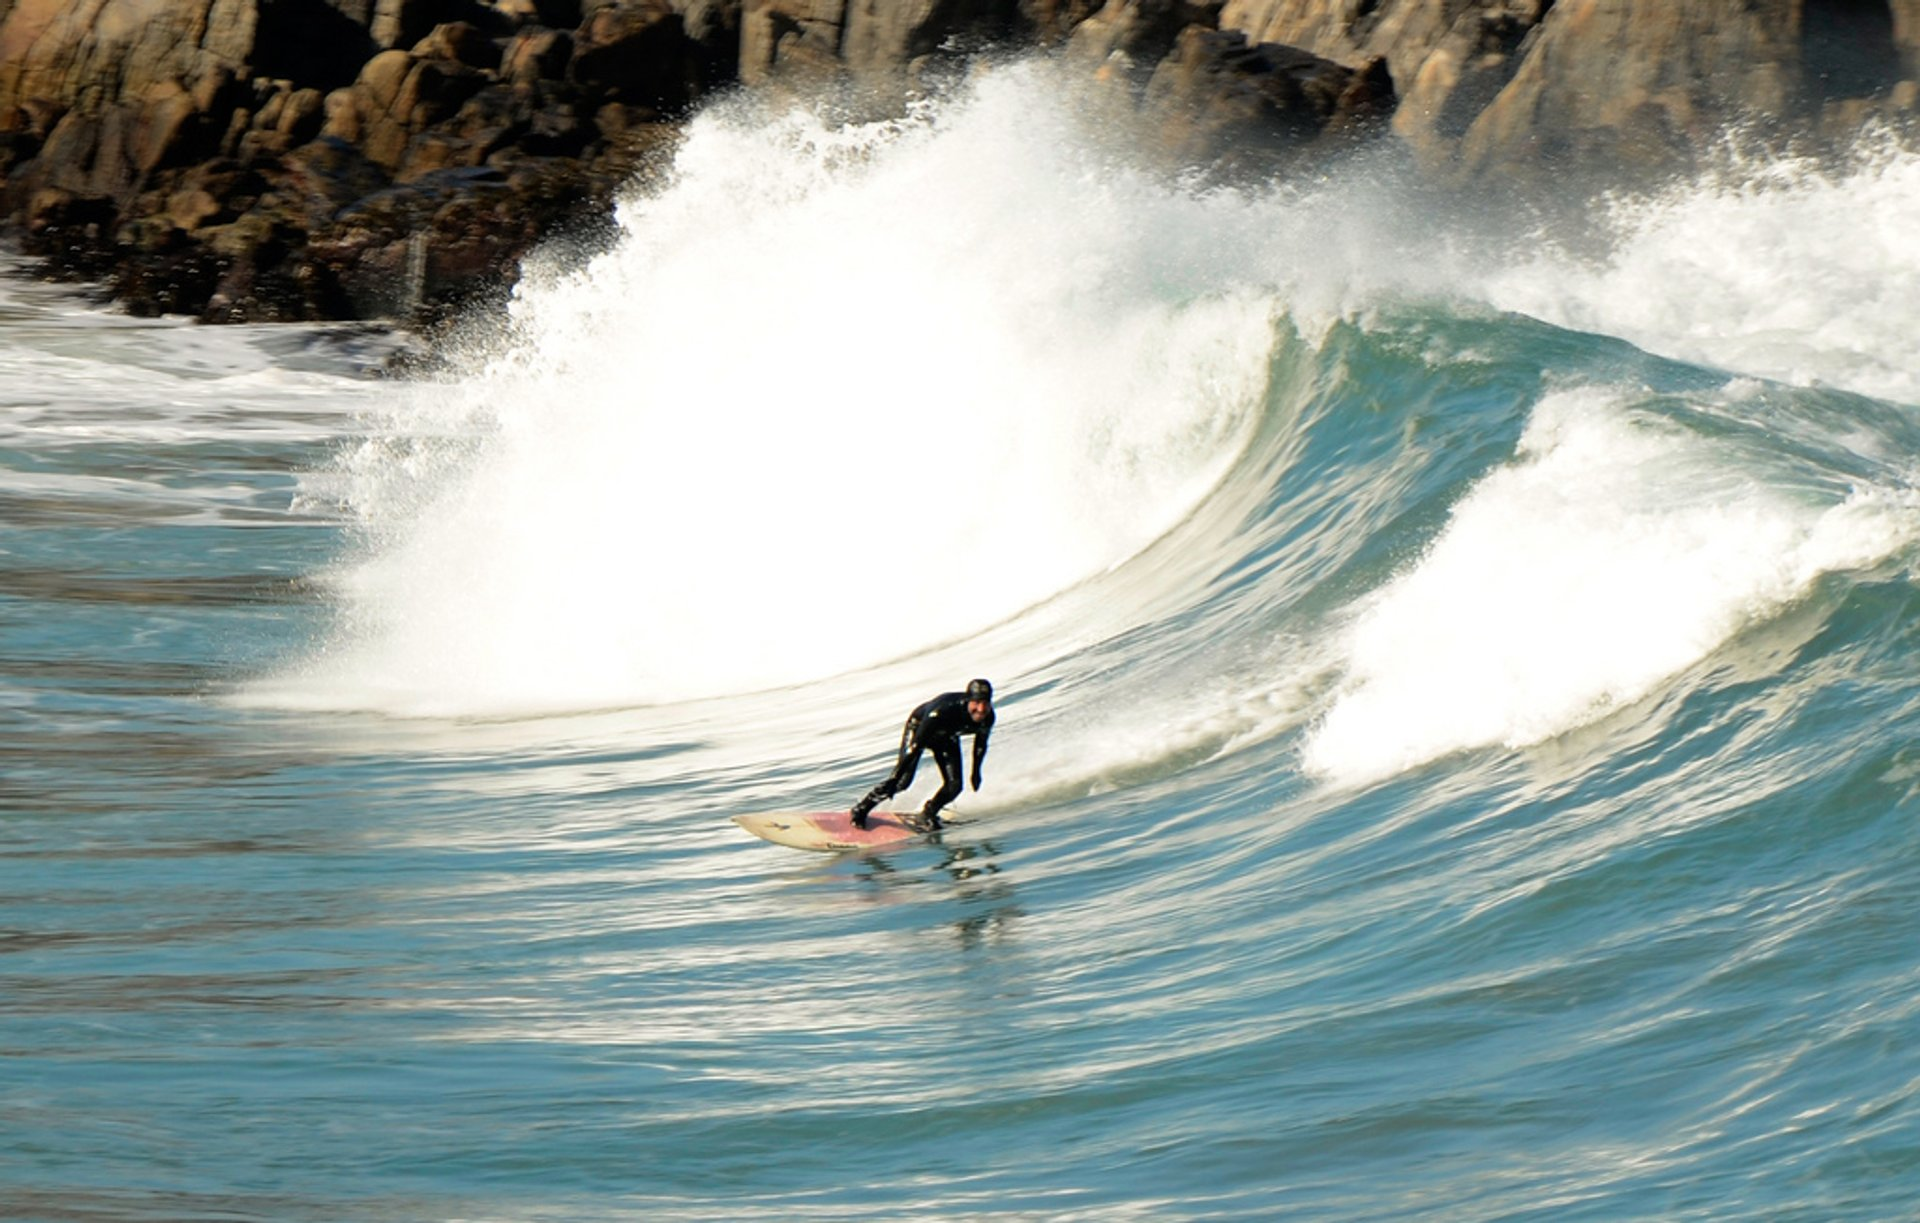 Surfing and Windsurfing in Chile 2020 - Best Time